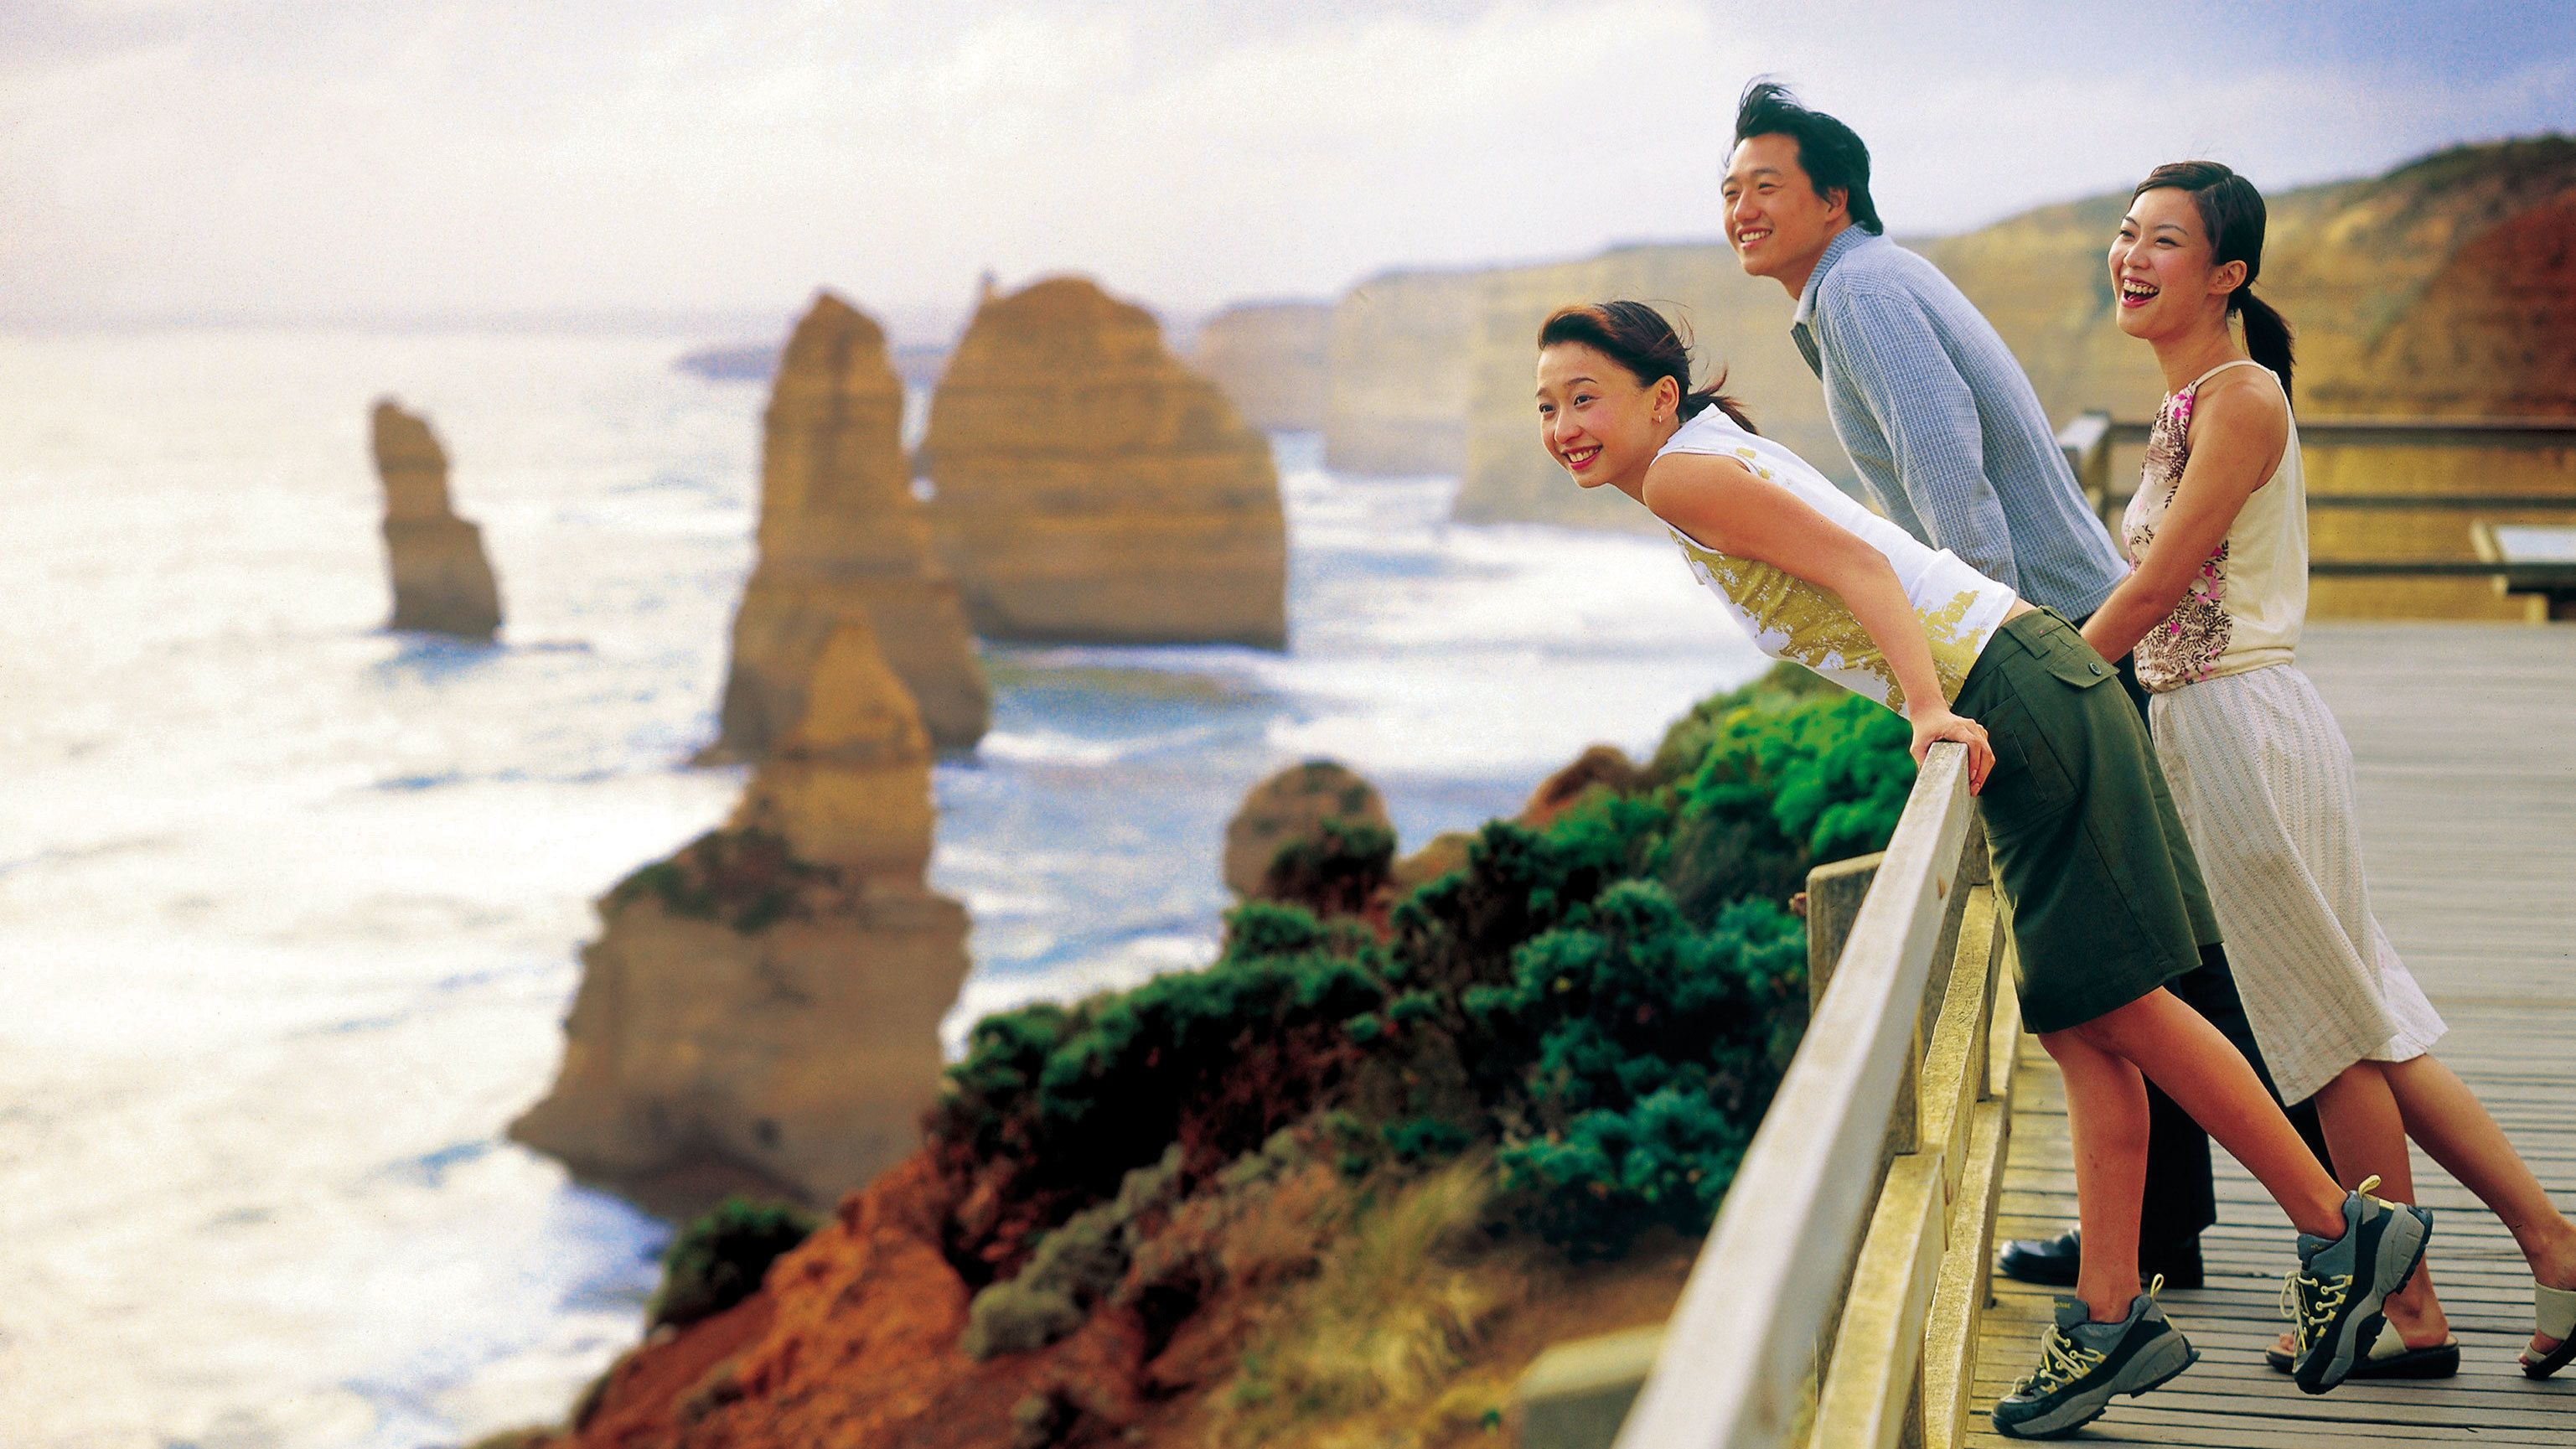 Visitors looking out to the sea from the cliffside in Australia